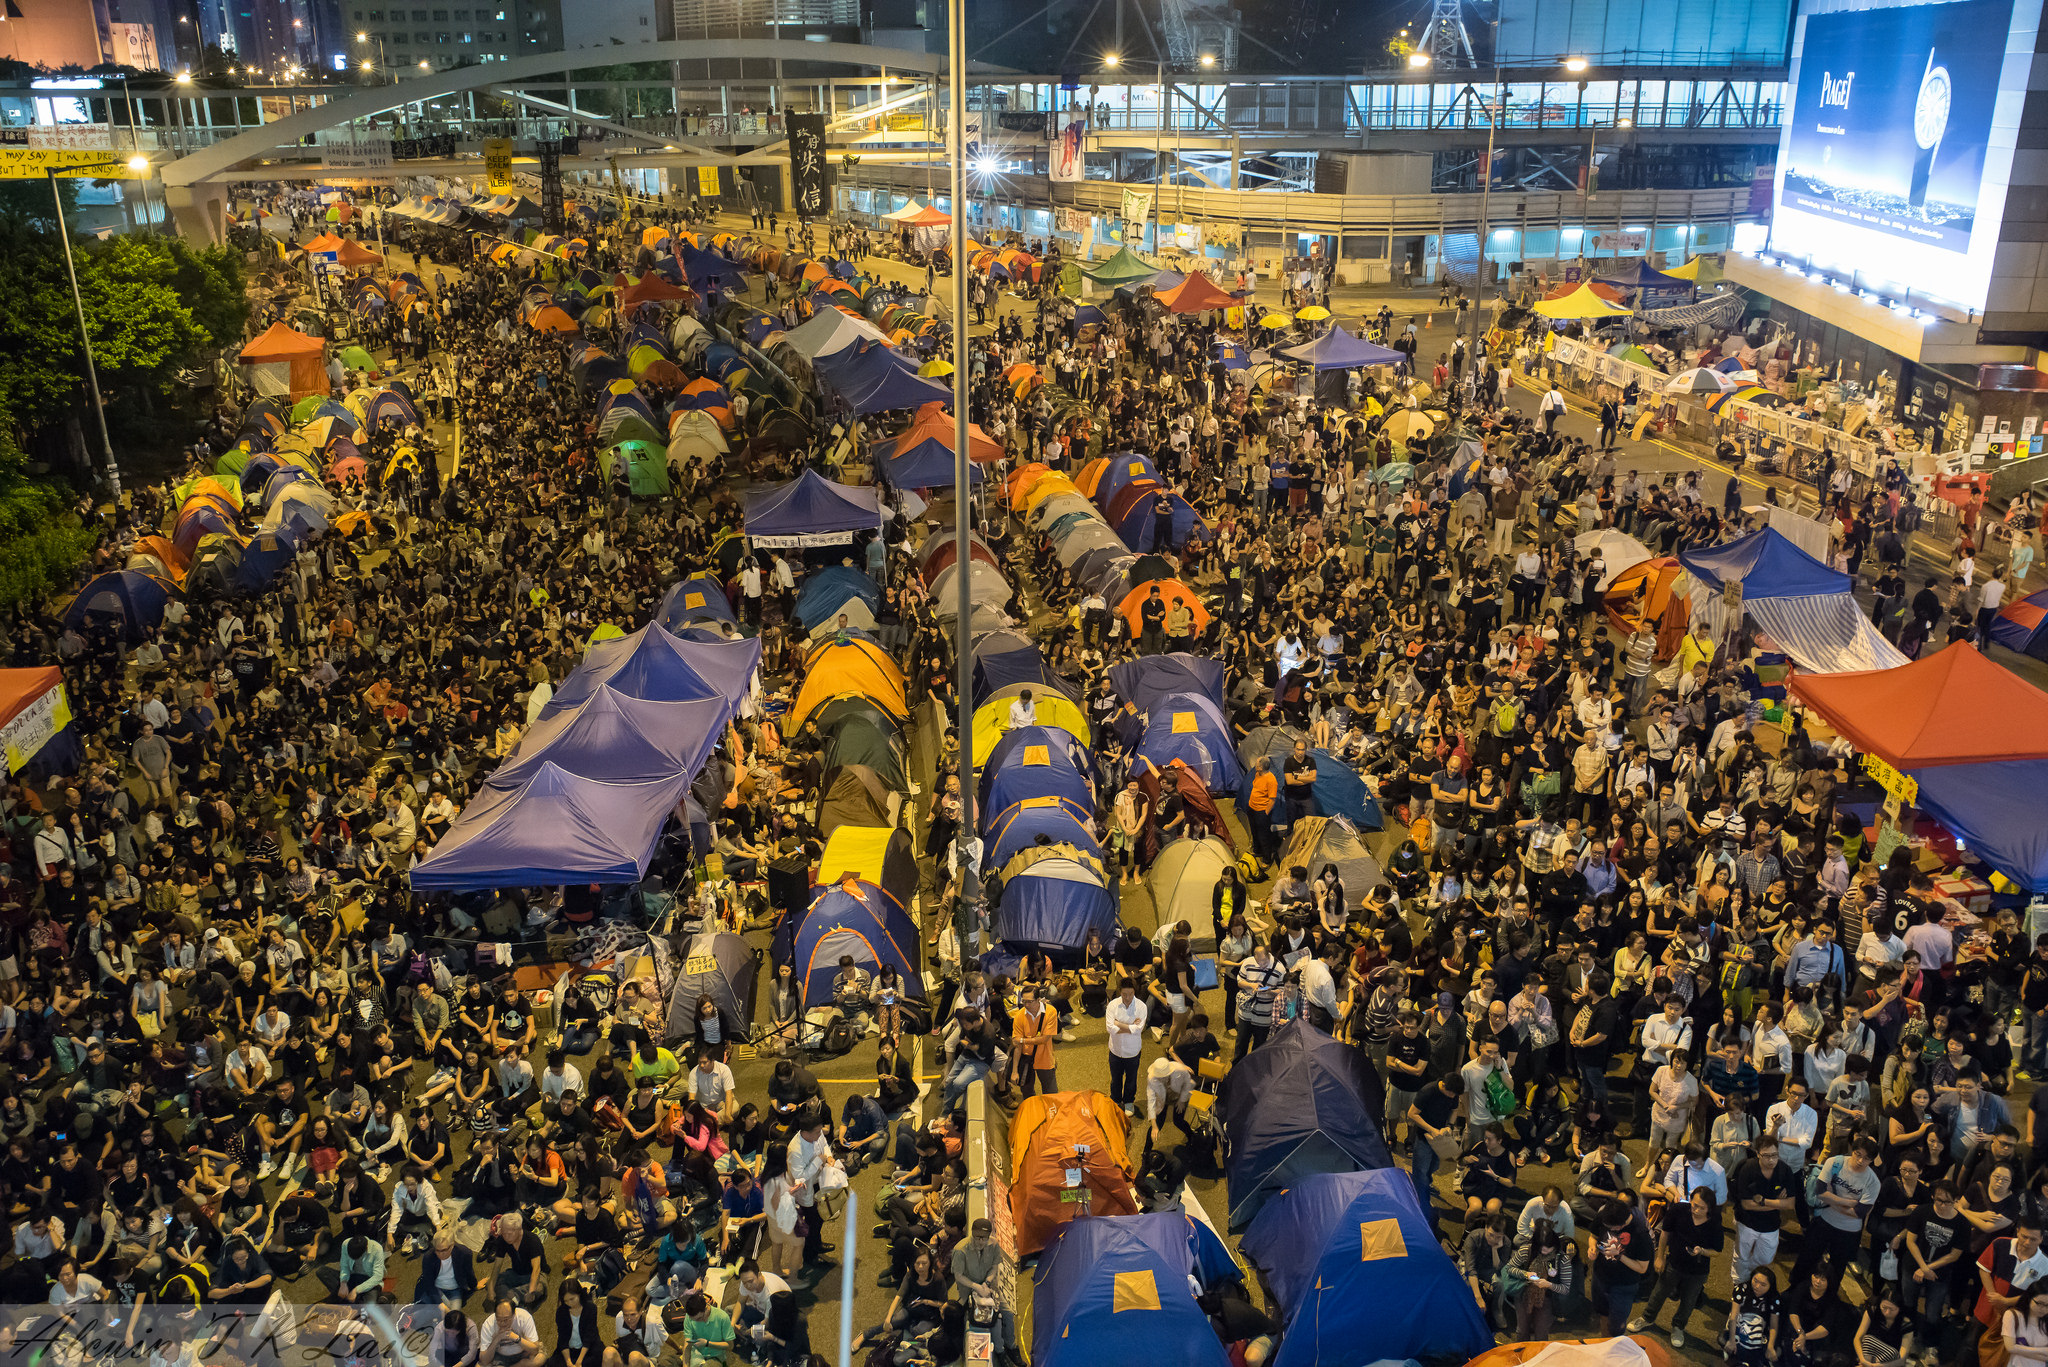 Hong Kong, Umbrella revolution